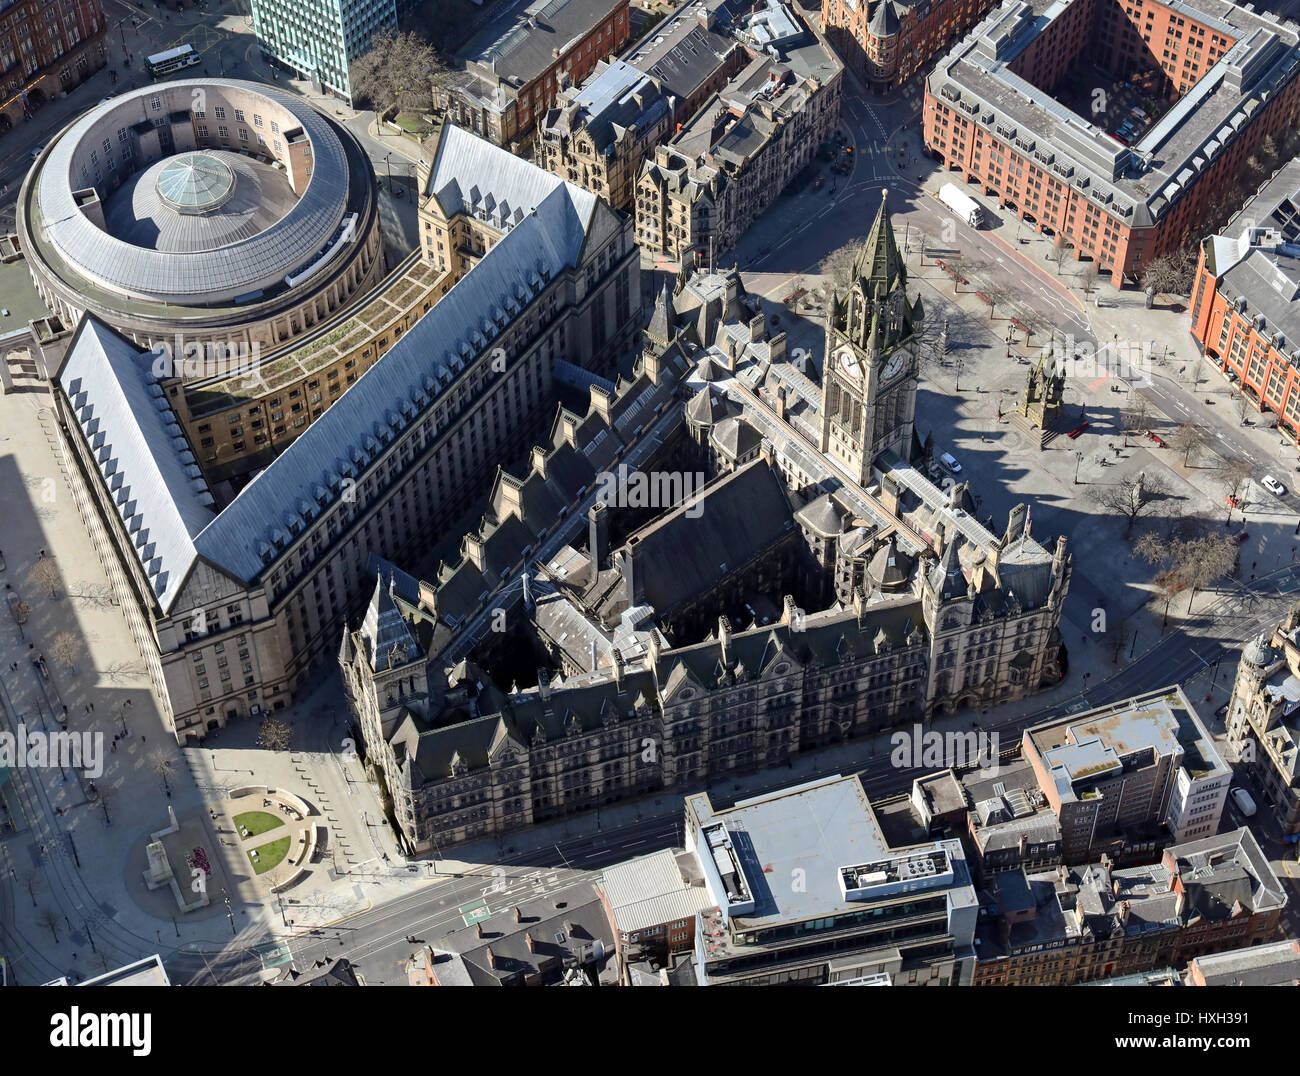 aerial view of Manchester Town Hall, UK - Stock Image